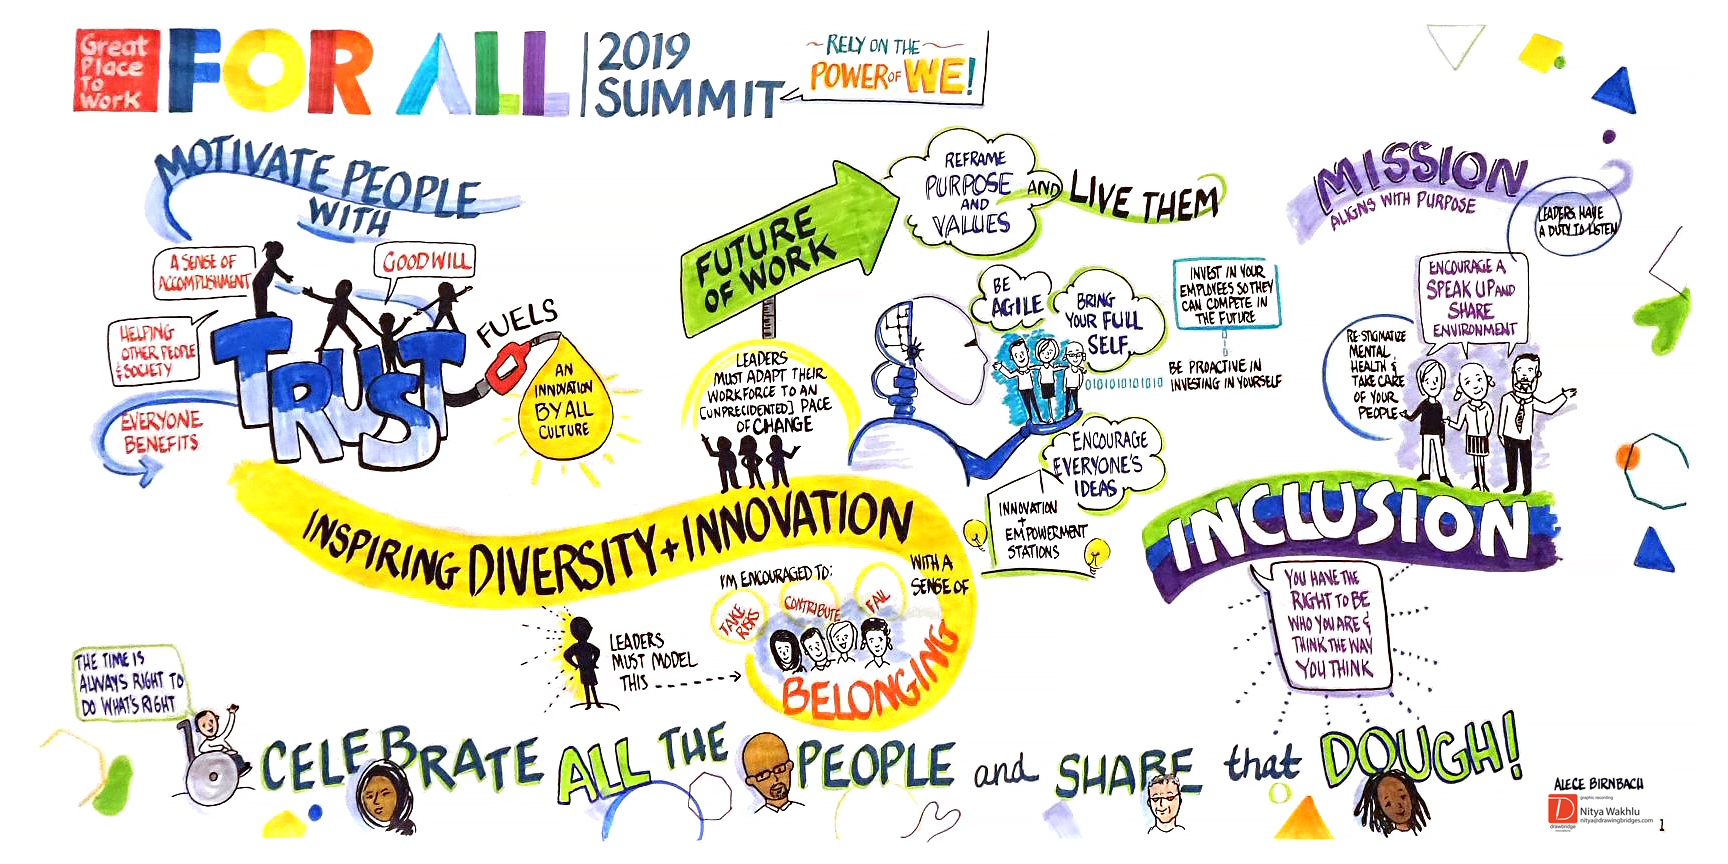 Beautiful Notes on Innovation, D&I from Summit